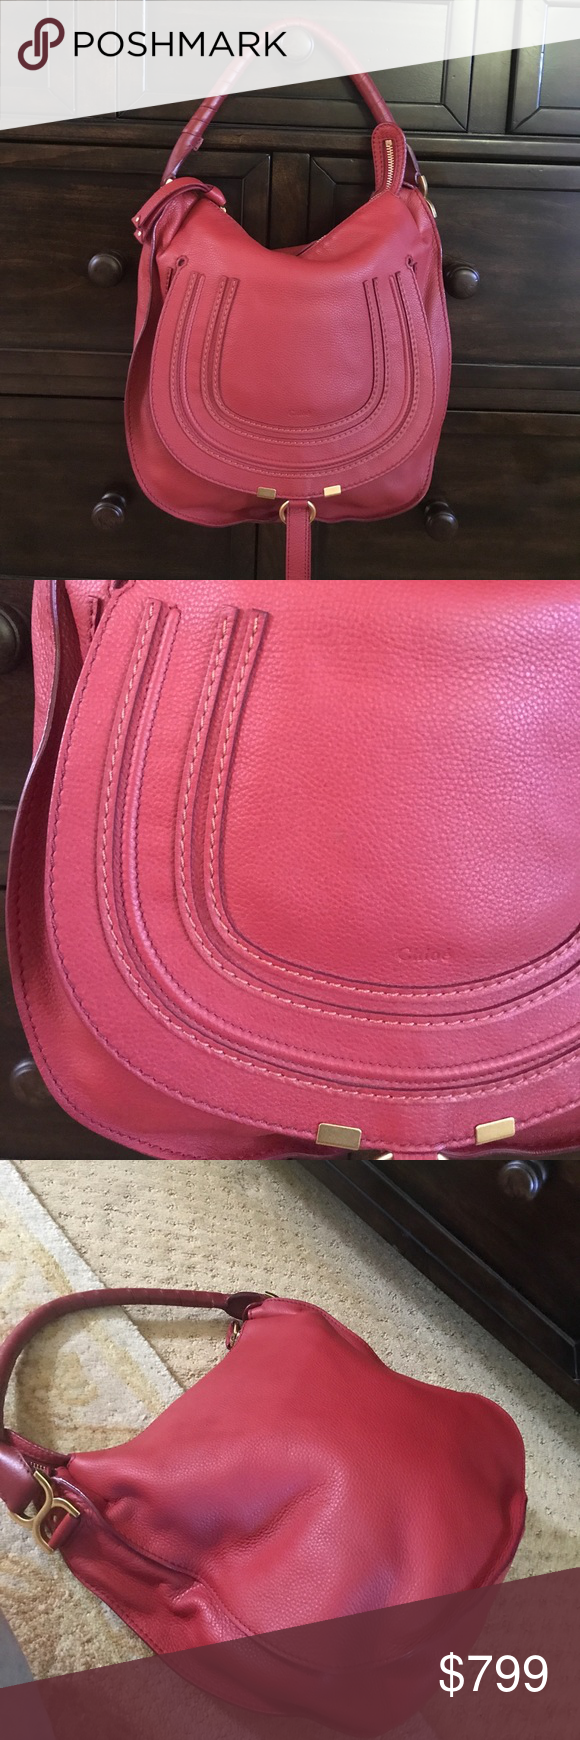 """Authentic Chloe red Marcie hobo w duster Like new! Cherry red Chloe Marcie hobo. Includes cards and duster. Make your own luck with this horseshoe Chloe hobo. Enduring pebbled calfskin. Shiny golden hardware. Wrapped top handle with signature Chloe bow-shaped buckle. Dipped zip top fits snugly under the arm. Pintucked horseshoe flap-pocket on front; slide-ring closure. Tooled """"Chloe"""" logo on center; fluted edges. Interior zip and cell phone pockets. 12 1/2""""H x 12 1/4""""W x 3 3/4""""D. Made in…"""